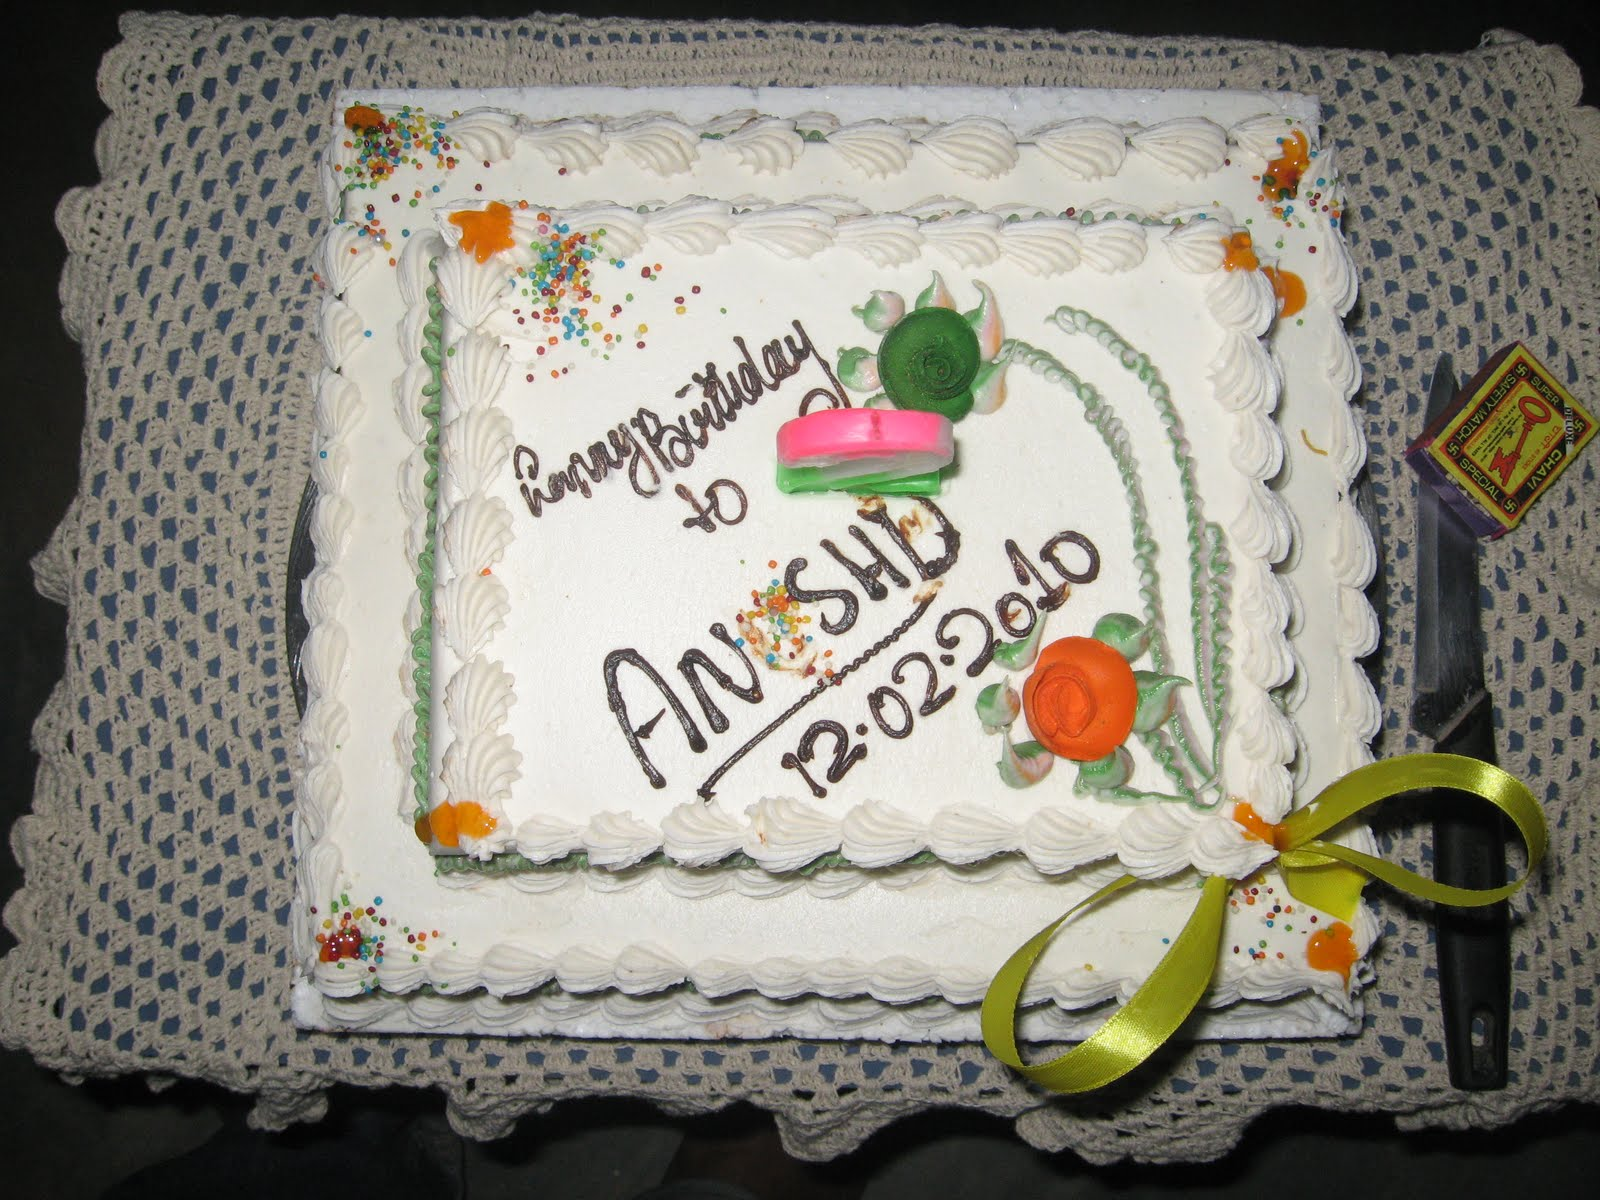 Cake Images With Name Anshu : Anshu: My Second B day cake - Soo Yummyyyyyyyyy